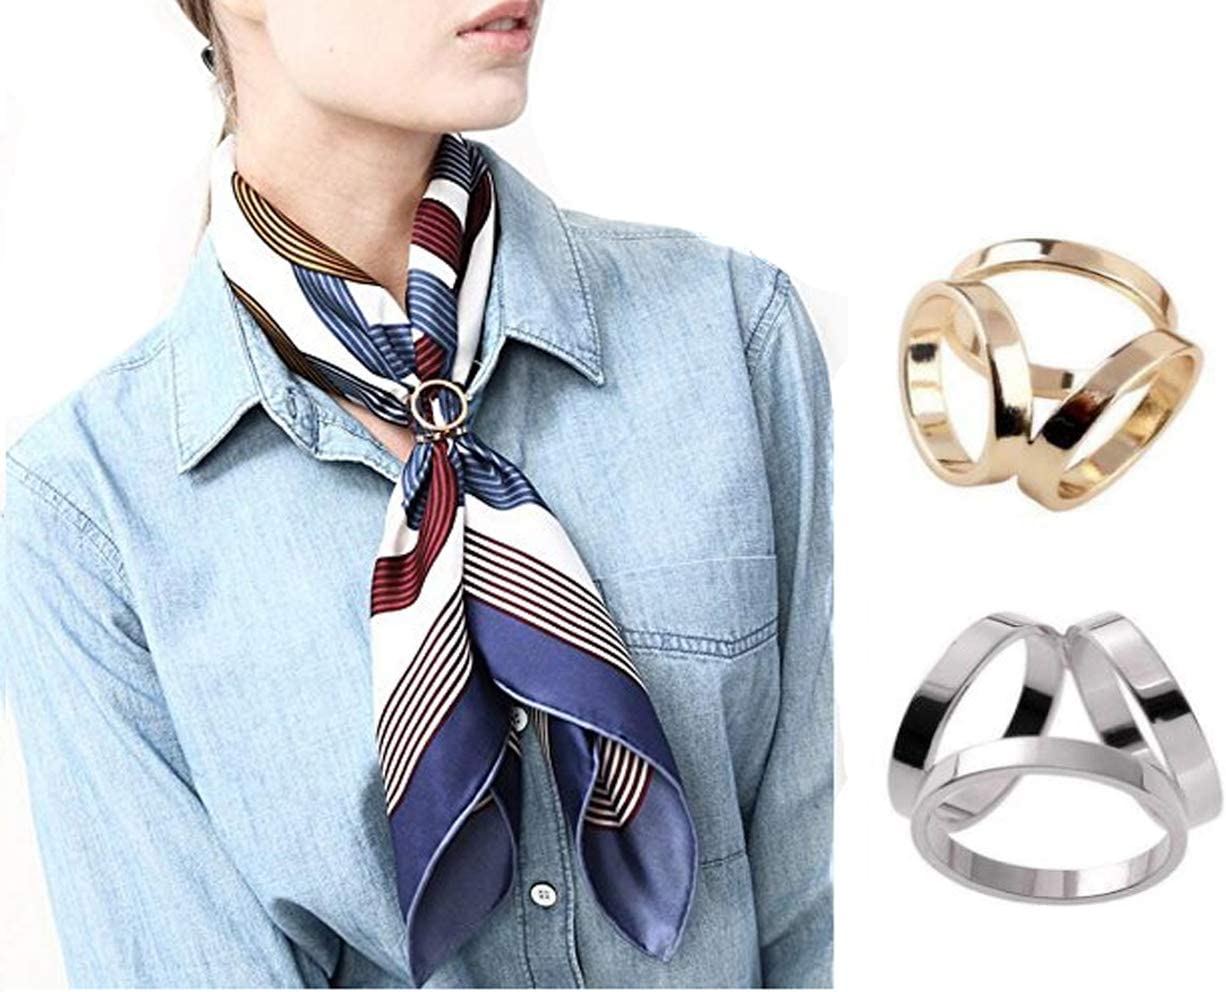 2 PCS Fashion Scarf Three Ring Buckle Modern Simple Triple Slide Jewelry Silk Sarf Clasp Clips Clothing Ring Wrap Holder for Women Lady (Sliver+Golden)